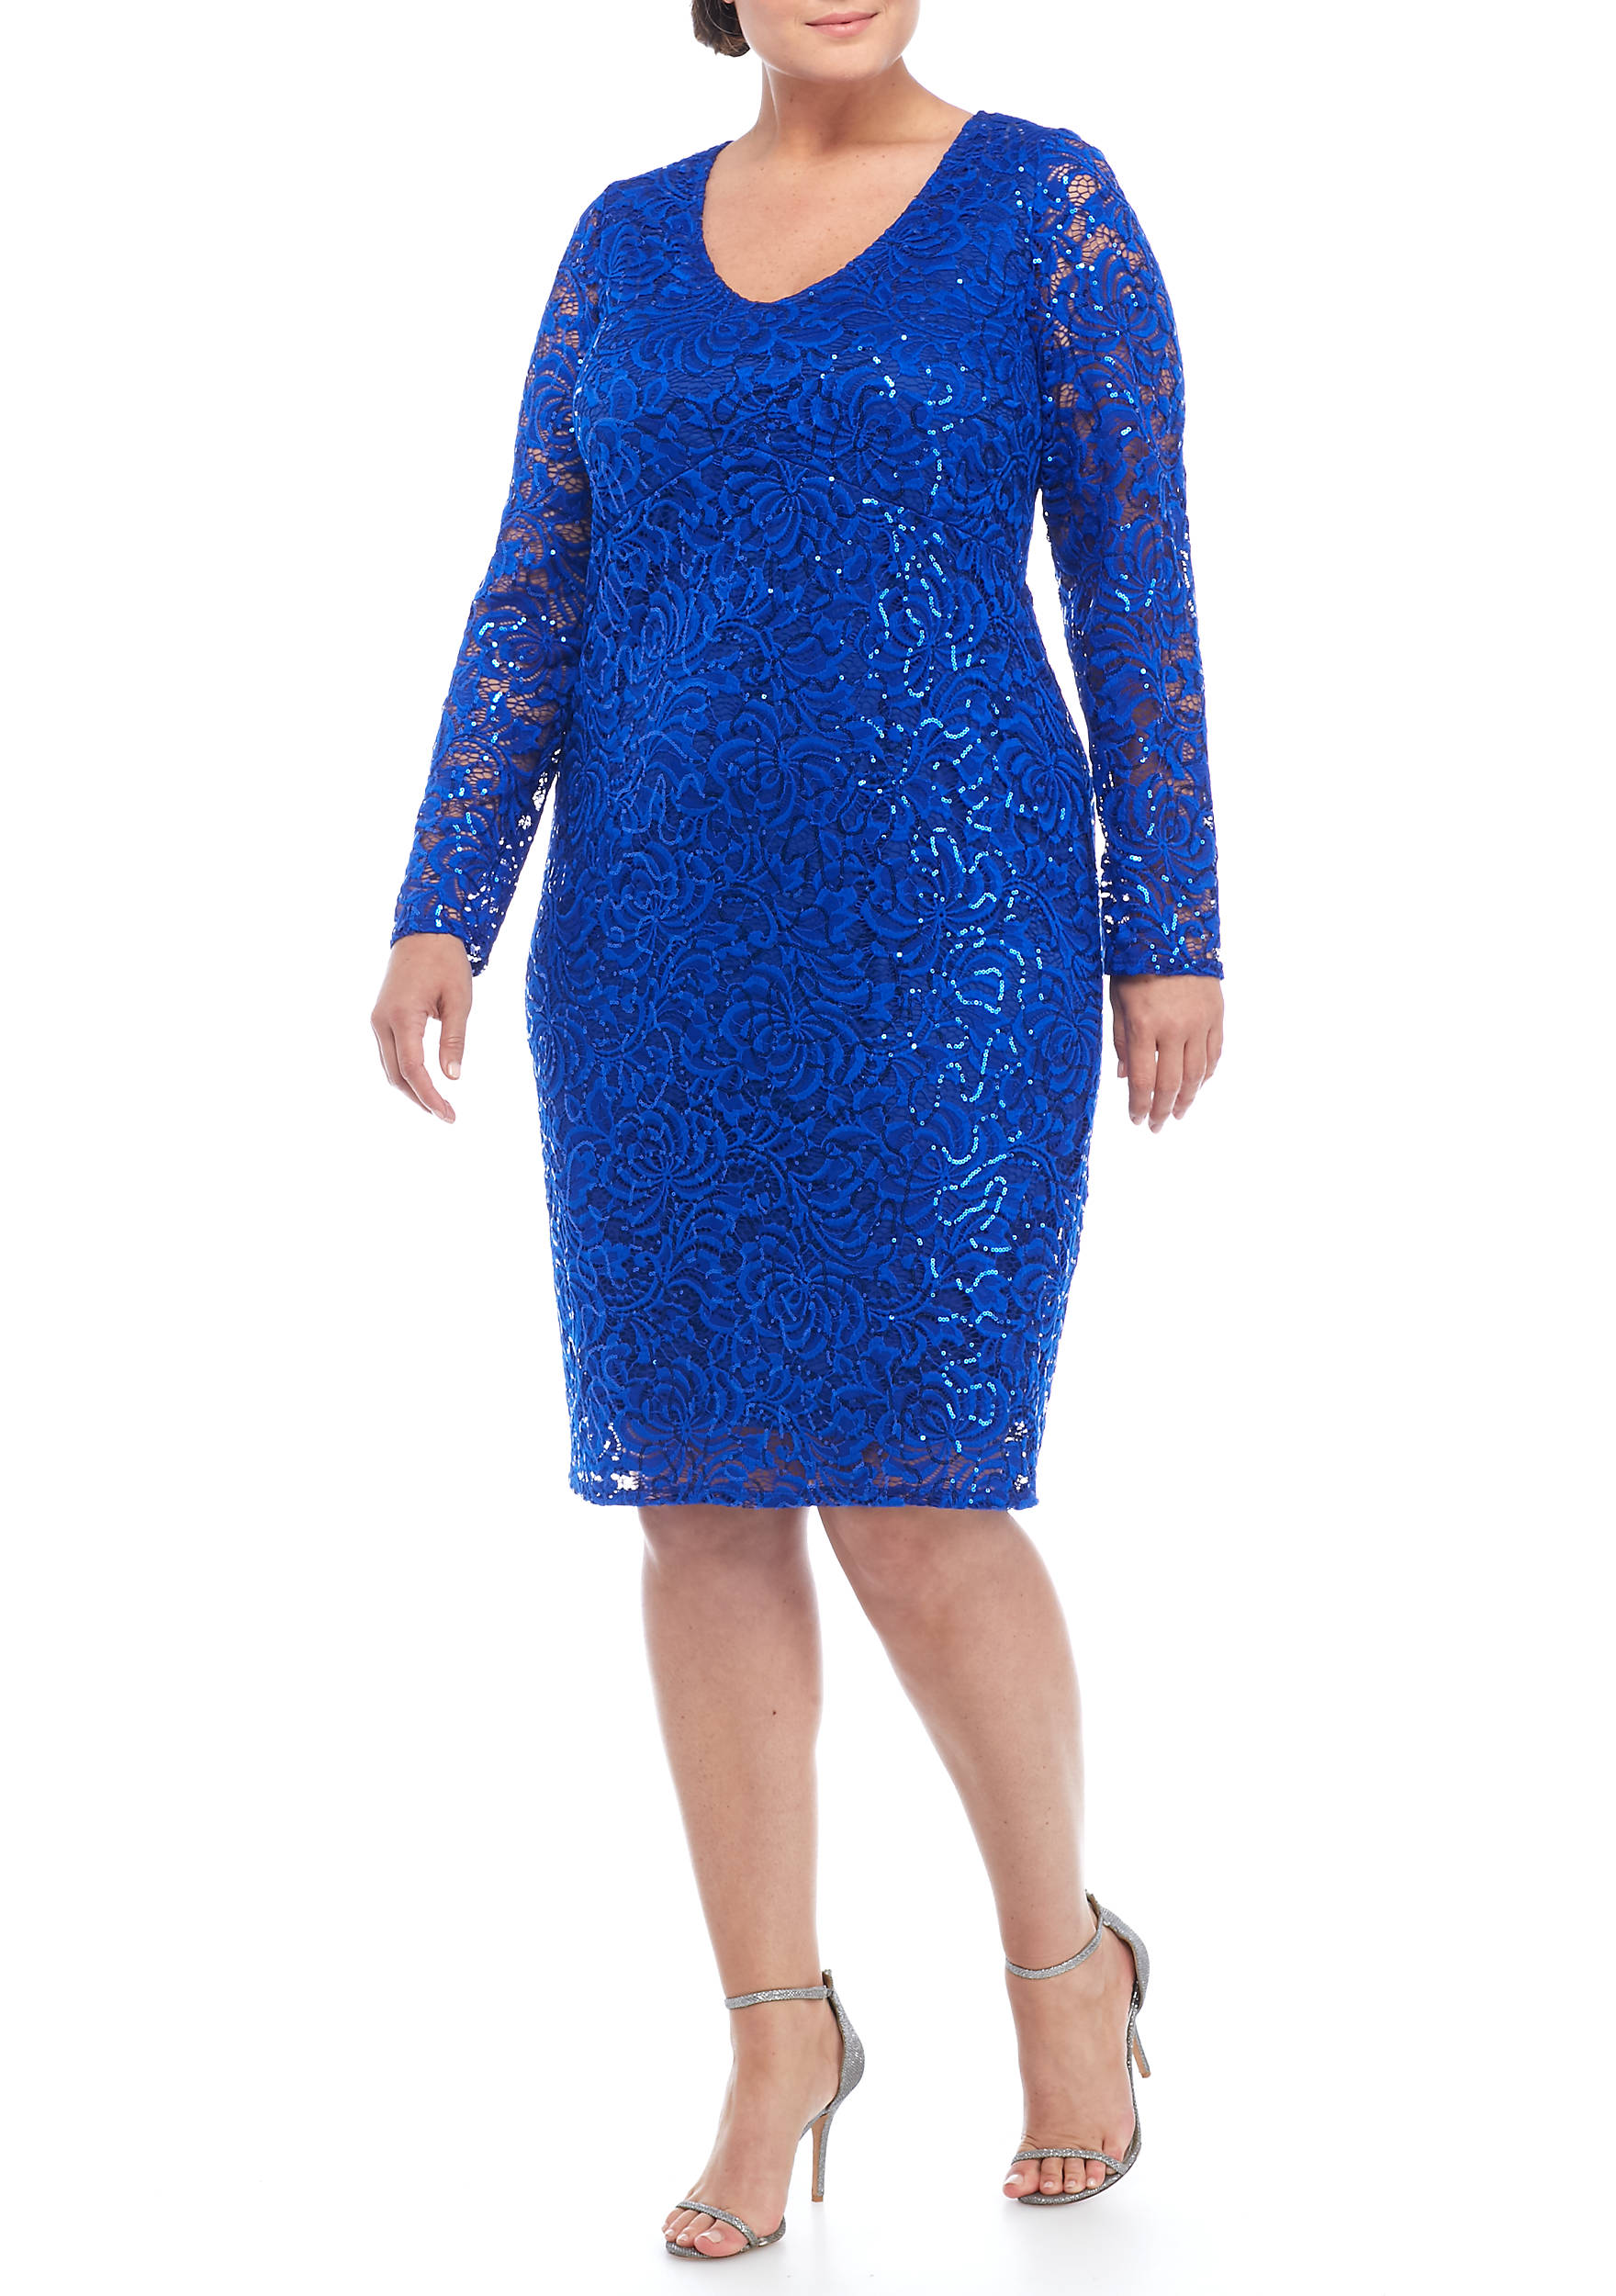 Marina Plus Size Lace And Sequin Cocktail Dress   belk